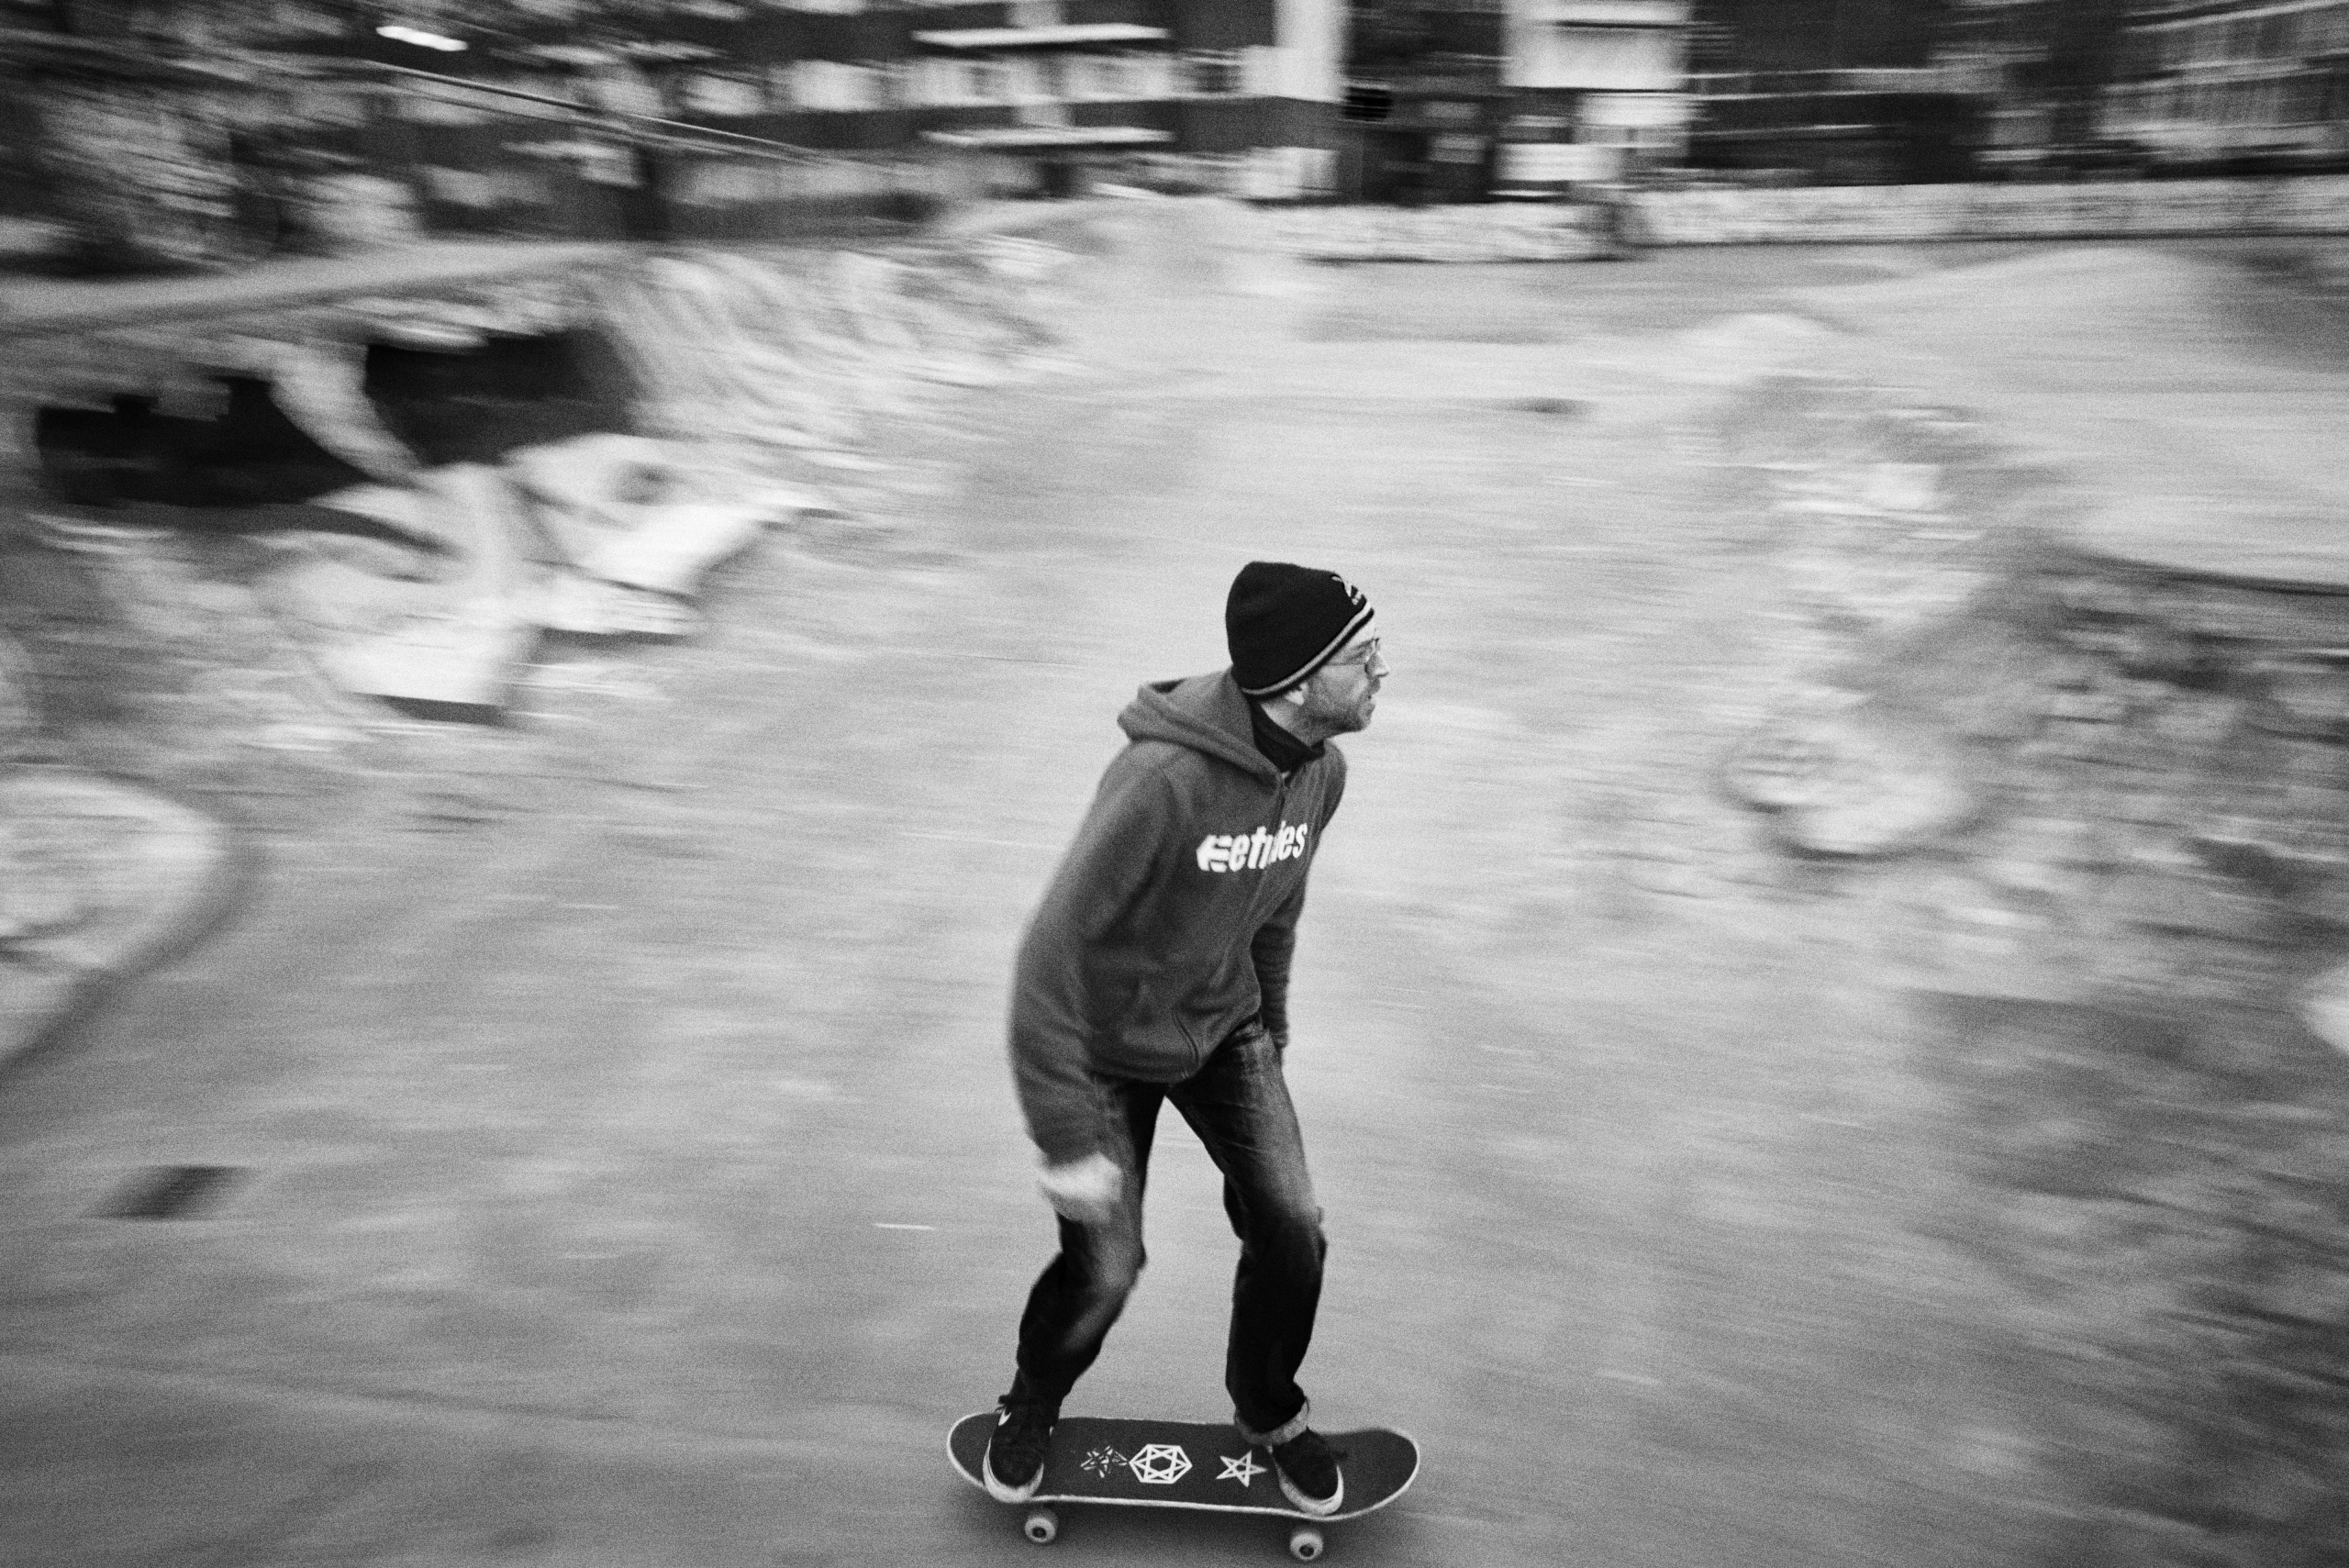 Brixton-skate-park-Matt-Stansfield-Lifestyle-Youth-Culture_6